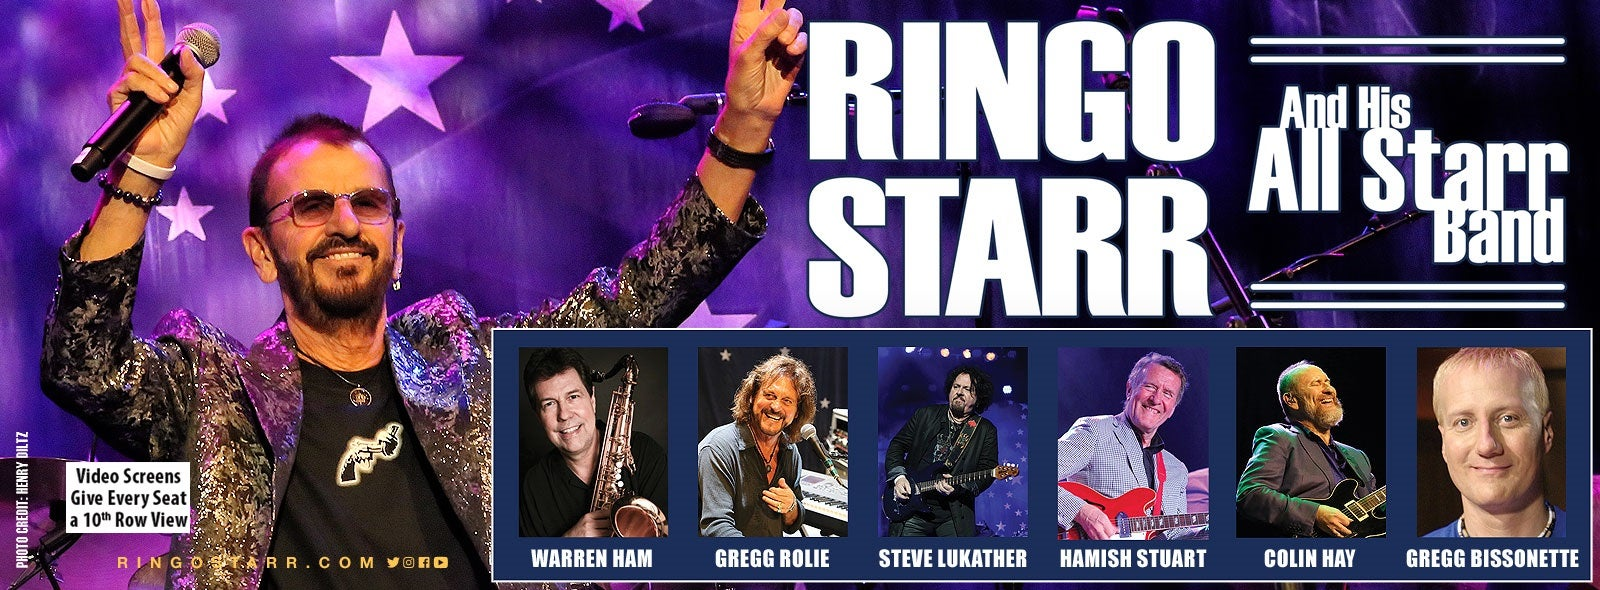 Ringo Starr Tour Dates 2020 Ringo Starr and His All Starr Band | DPAC Official Site